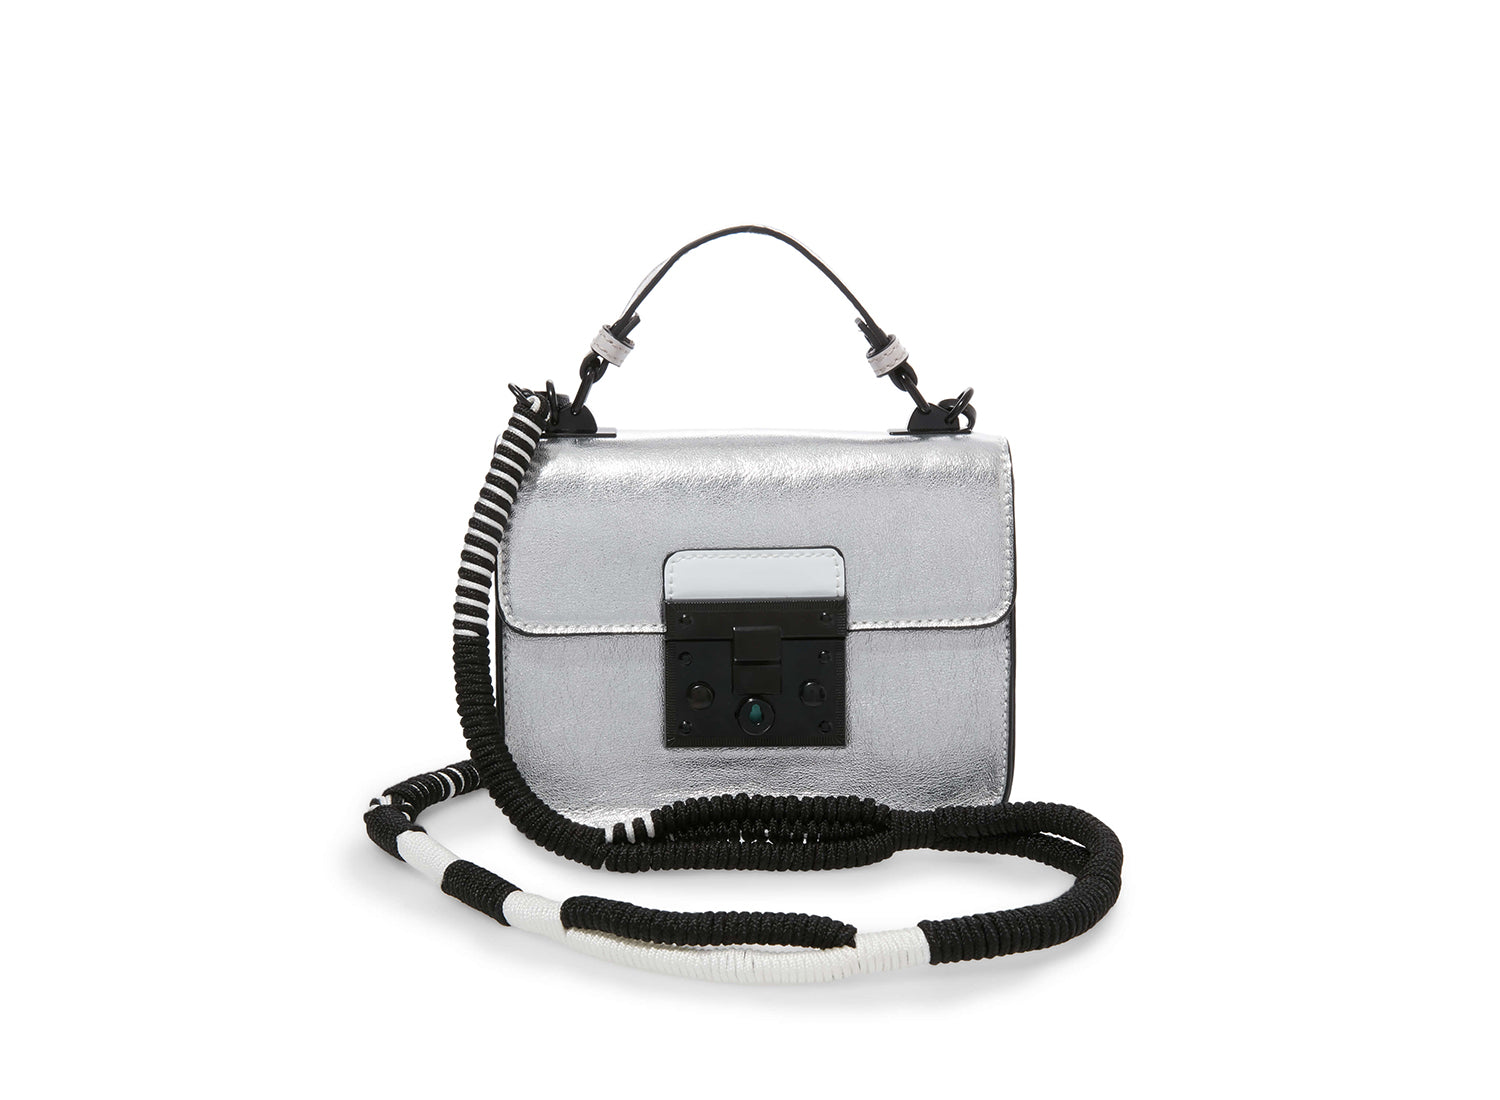 350aa5fb2d6 Handbags and Purses on Clearance